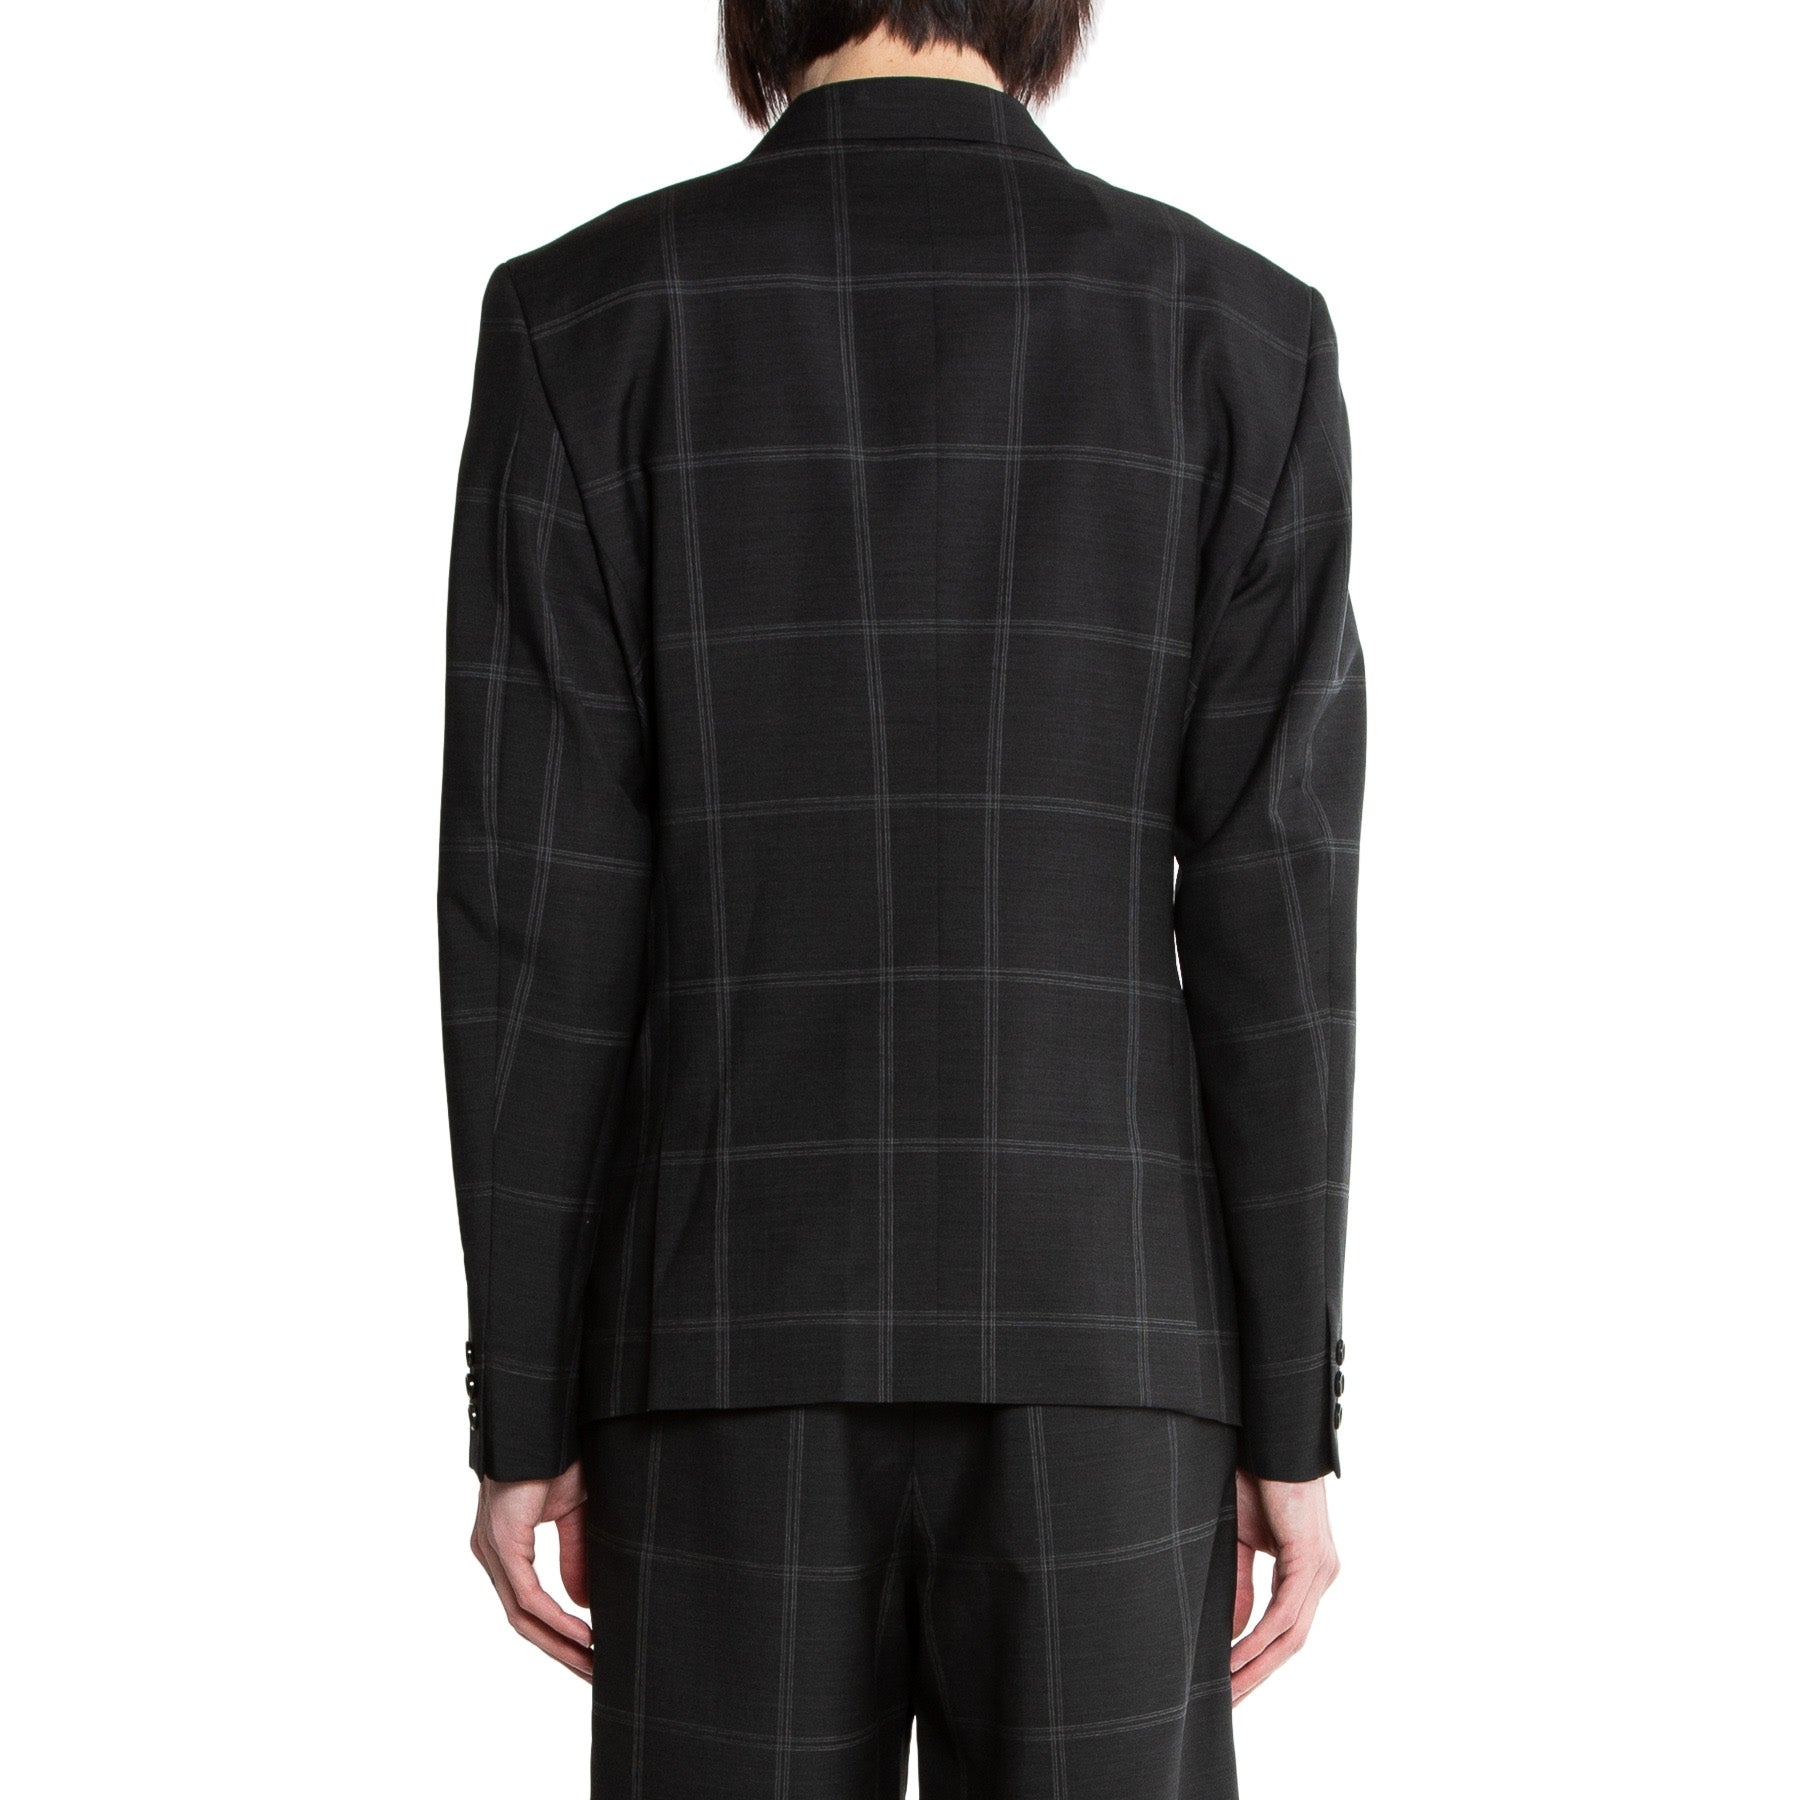 CDG HOMME PLUS | CHECKED SUIT JACKET